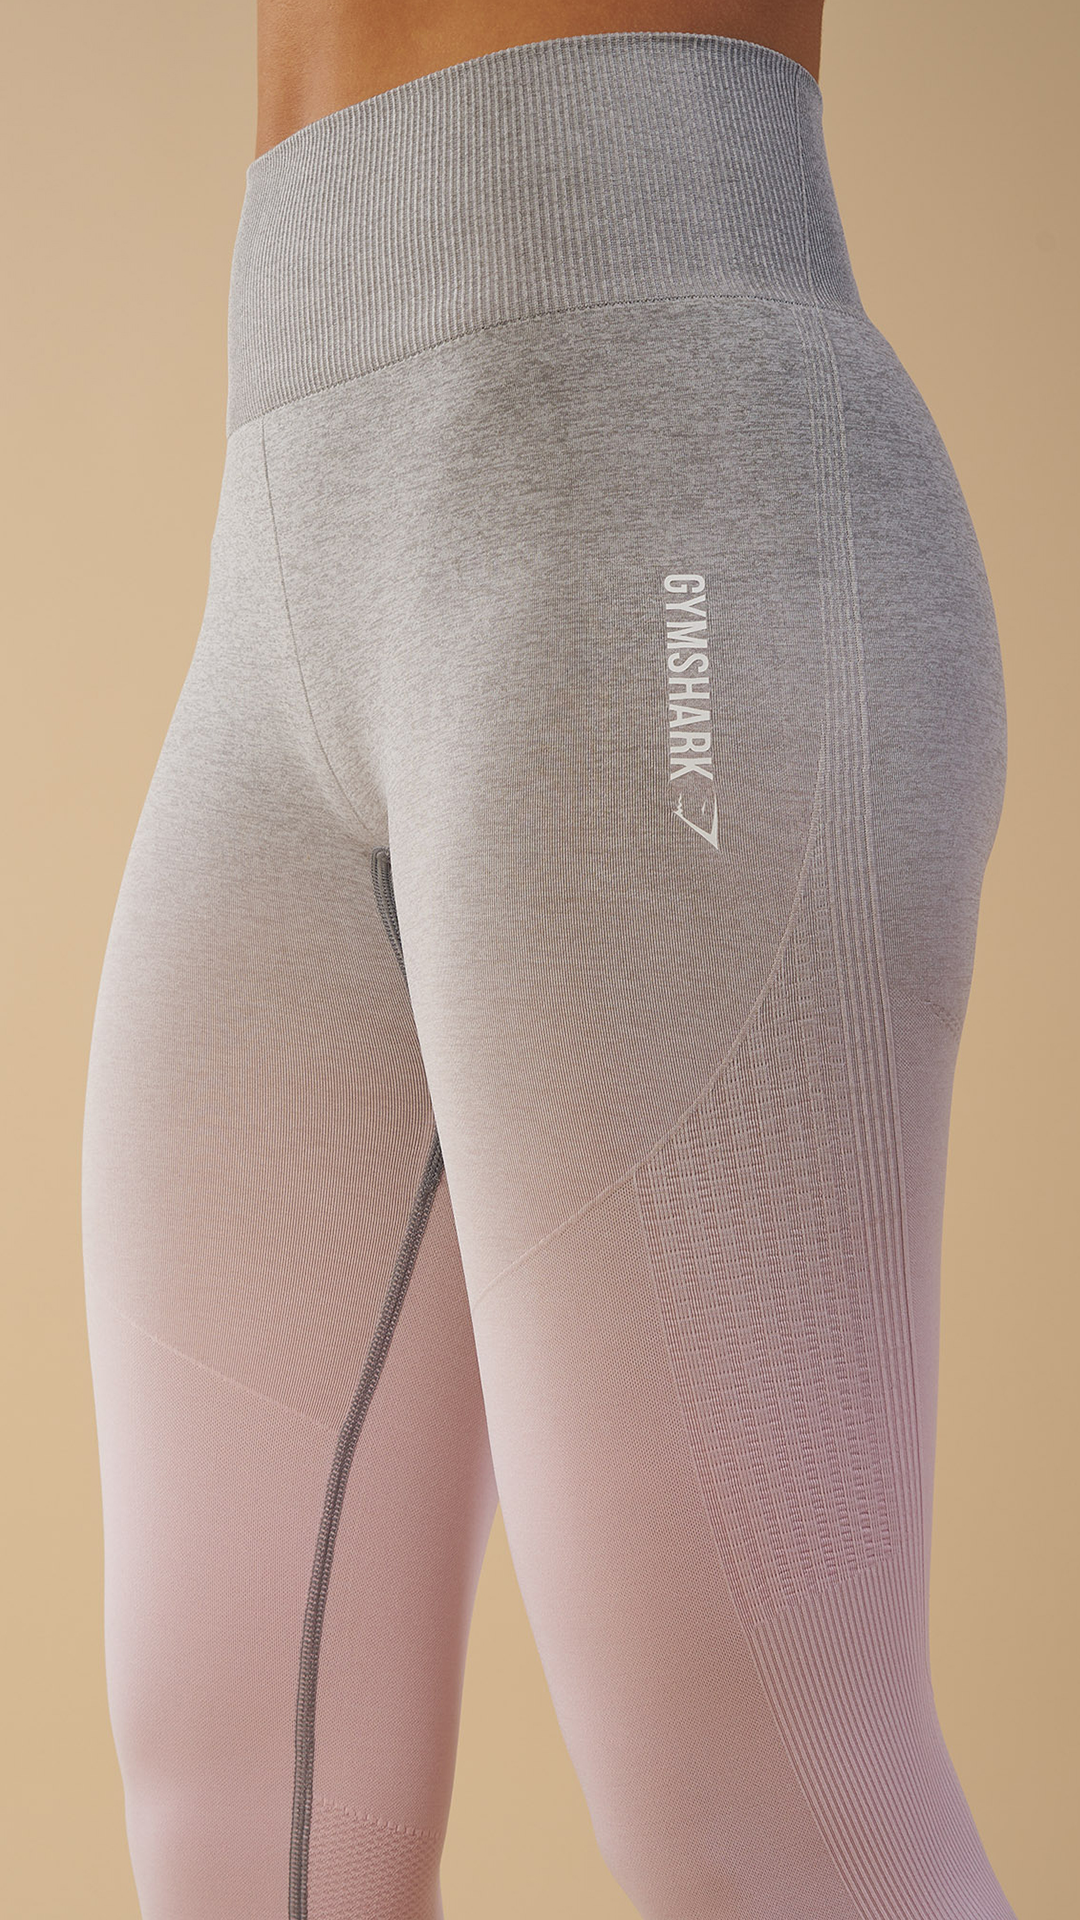 52f66760bd773 The Gymshark Ombre Seamless Leggings are perfect for both cardio and weight  training, due to its durable stretch fabric providing a close, yet  comfortable ...